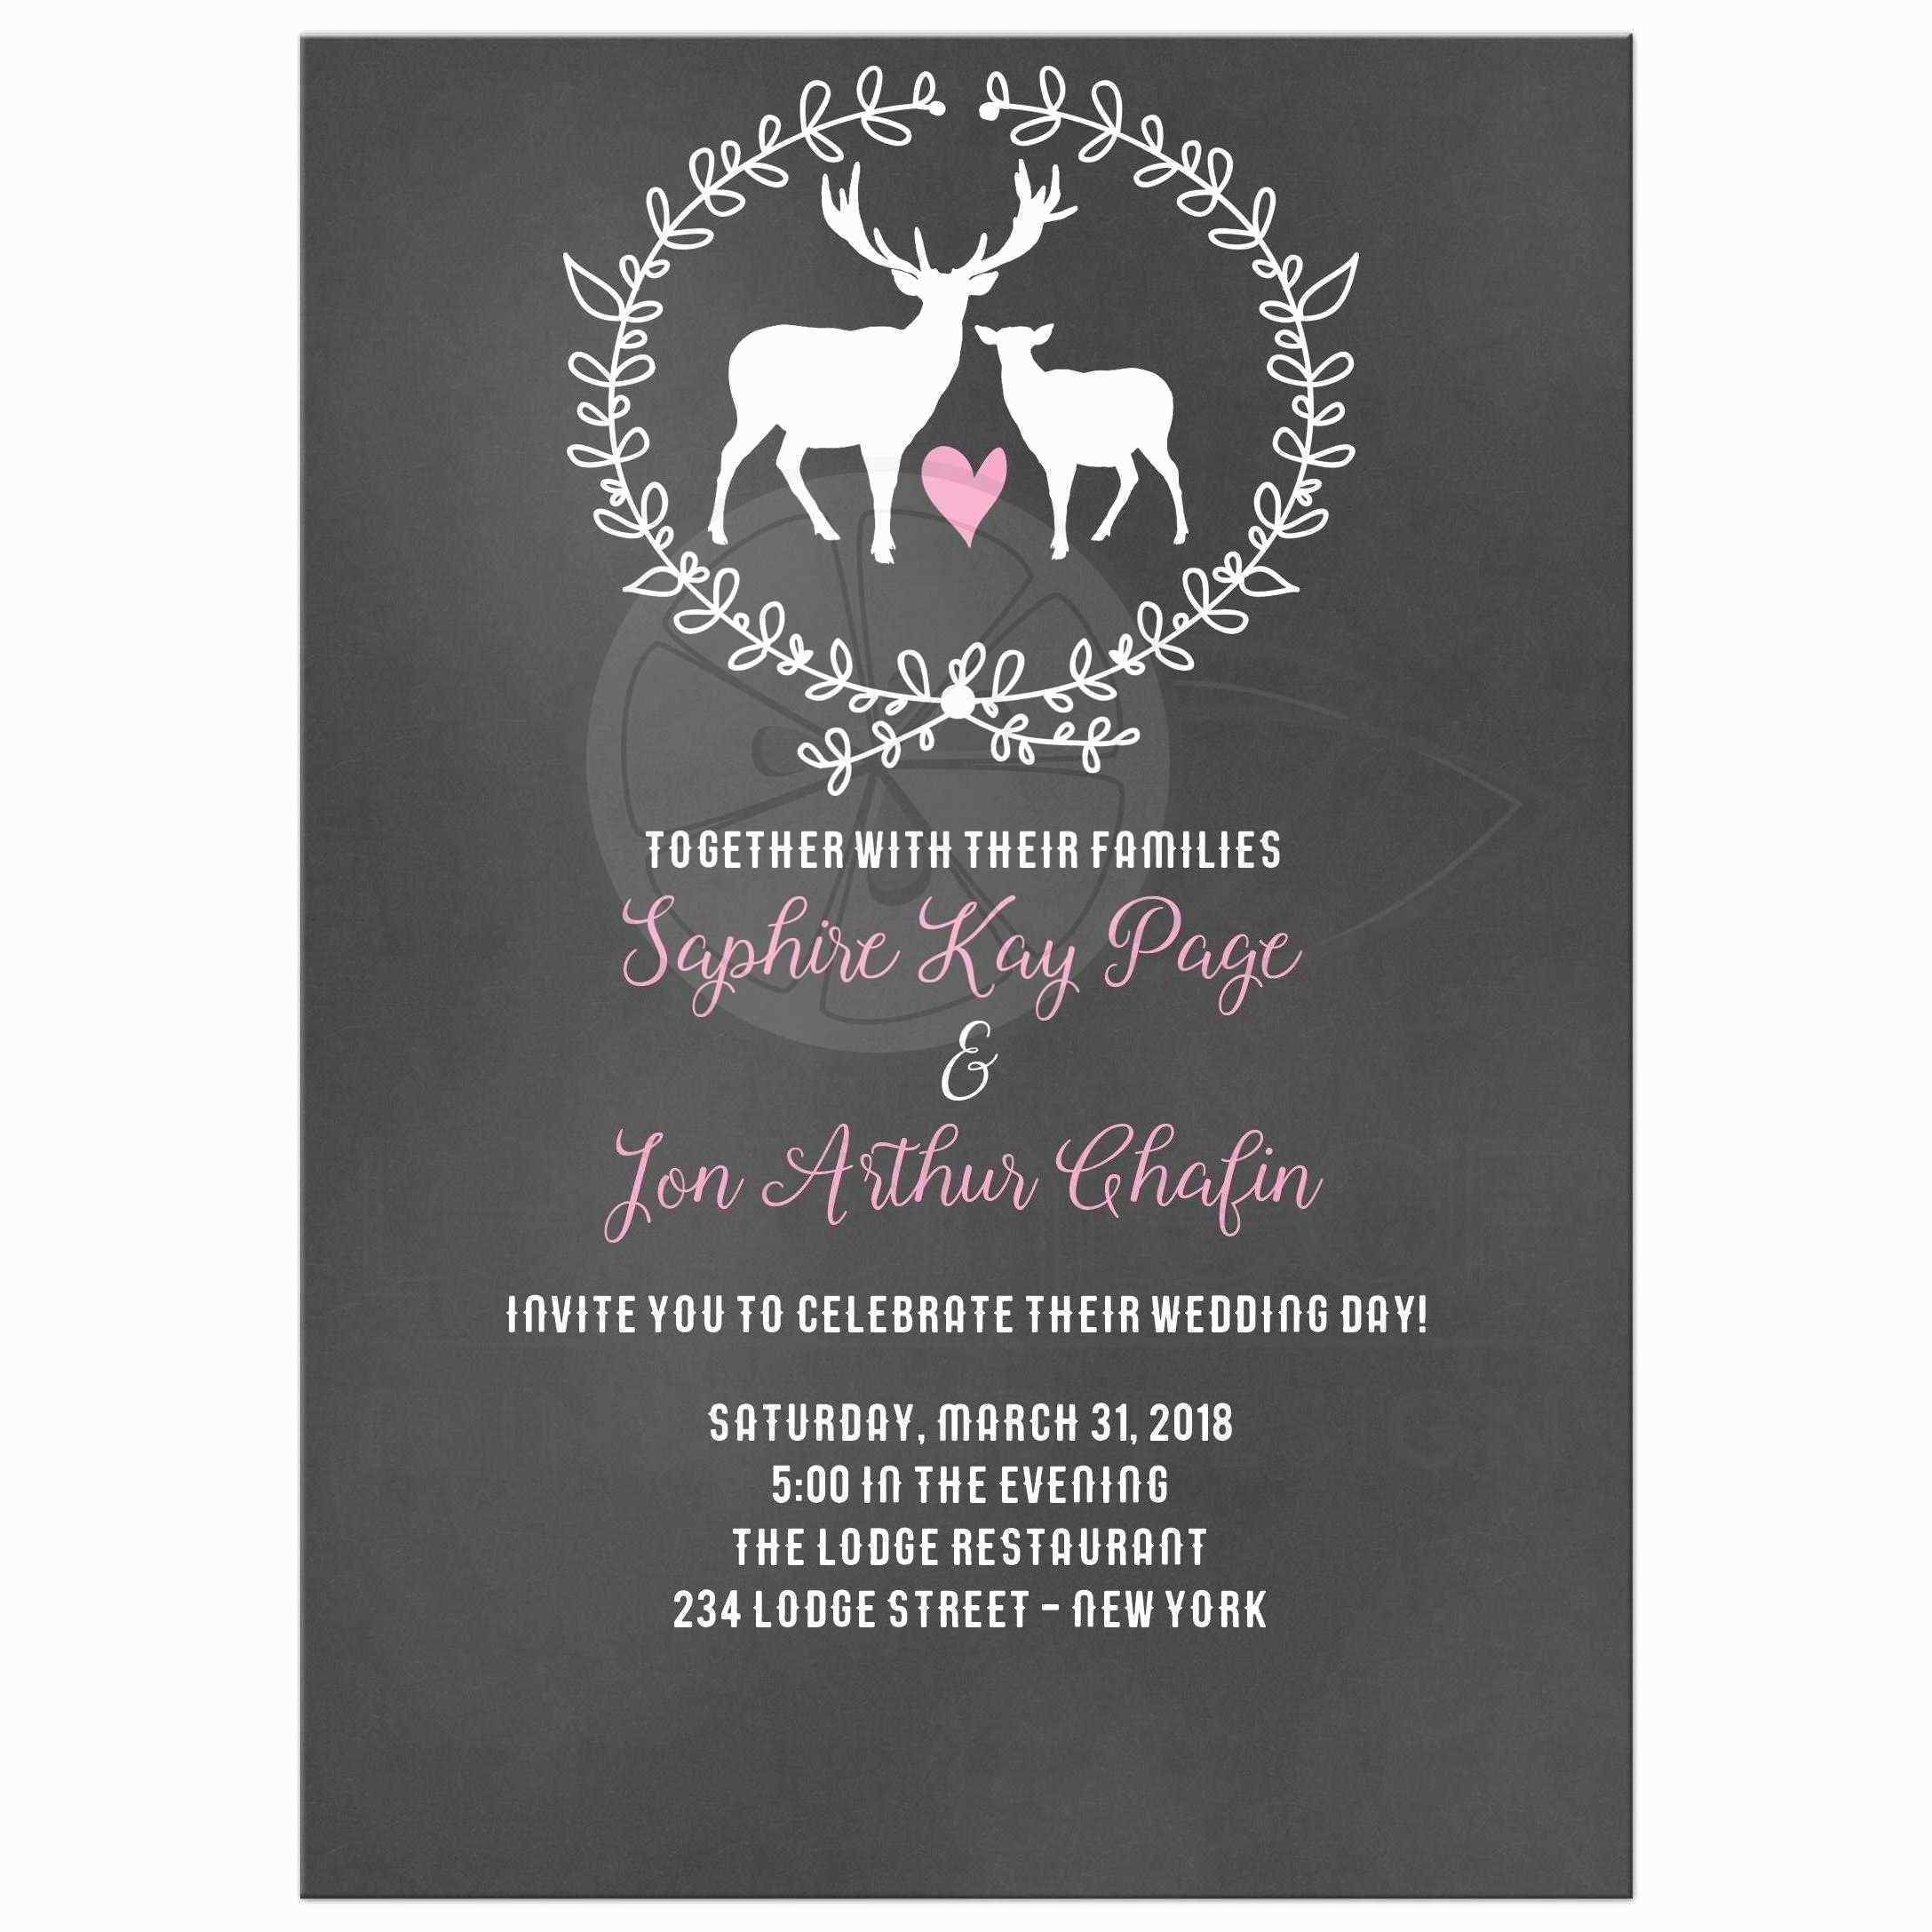 Evite Wedding Invitations Templates Free Unique 50th